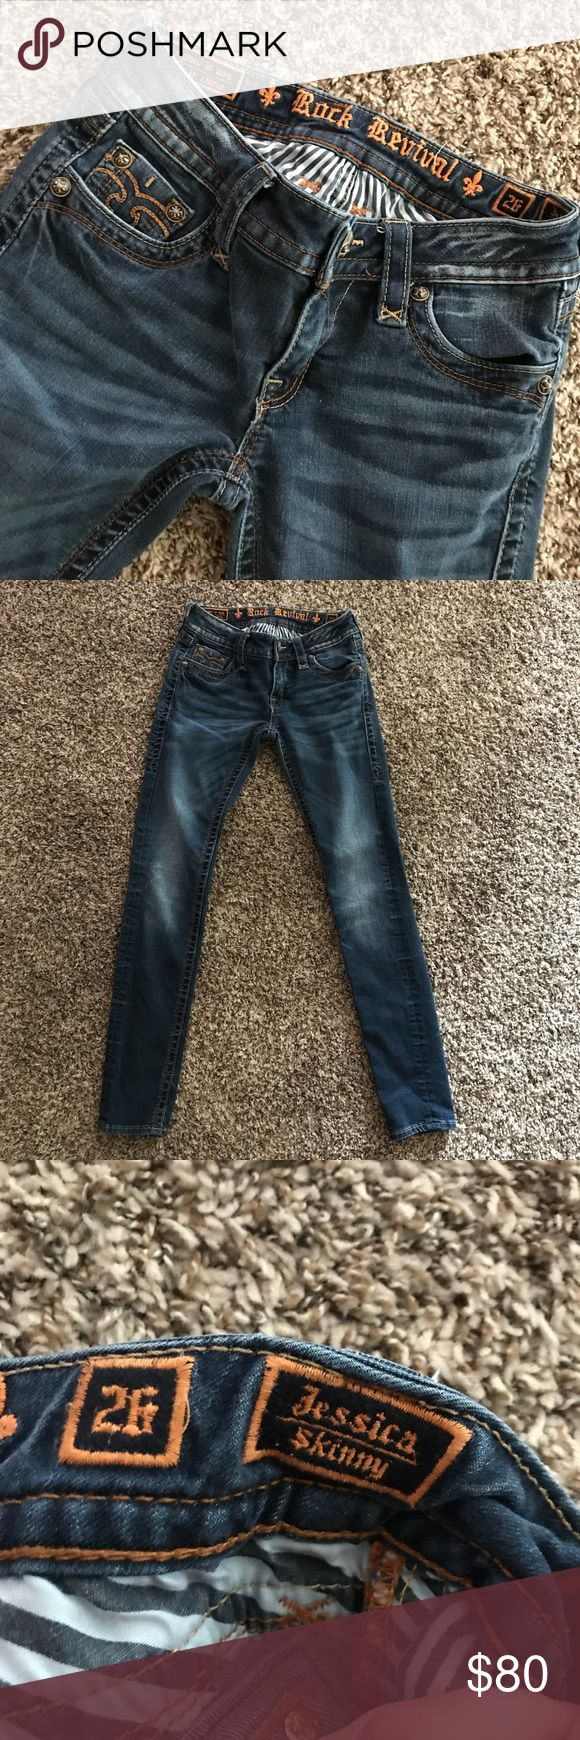 Rock Revival Skinny Jean Skinny leg. 26x33. Amazingly soft denim. Minimal detailing. Very classic jean. Darker wash. Maybe worn 10 times in the couple years that I've had them. They are in almost perfect condition. No stains, tears or defects. All hardware is in place. ✨Will consider offers, NO TRADES ✨ Need gone asap Rock Revival Jeans Skinny